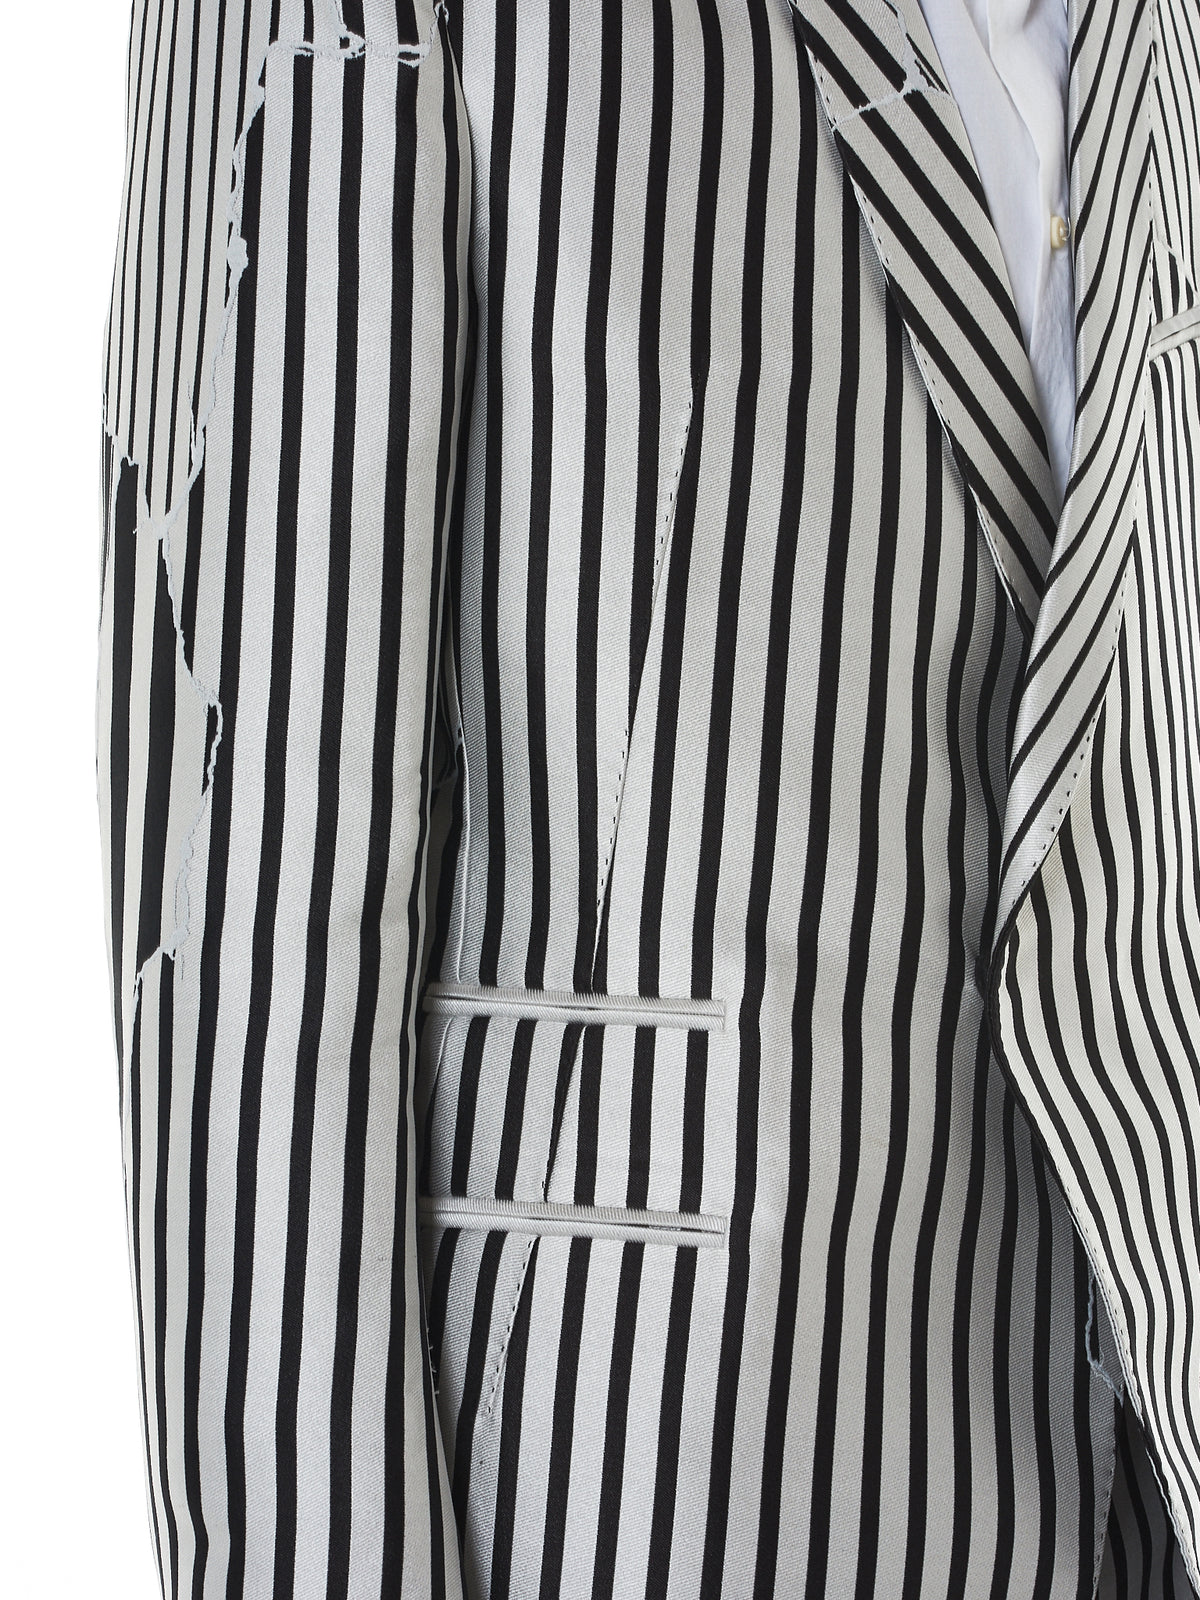 Haider Ackermann Striped Blazer - Hlorenzo Detail 2